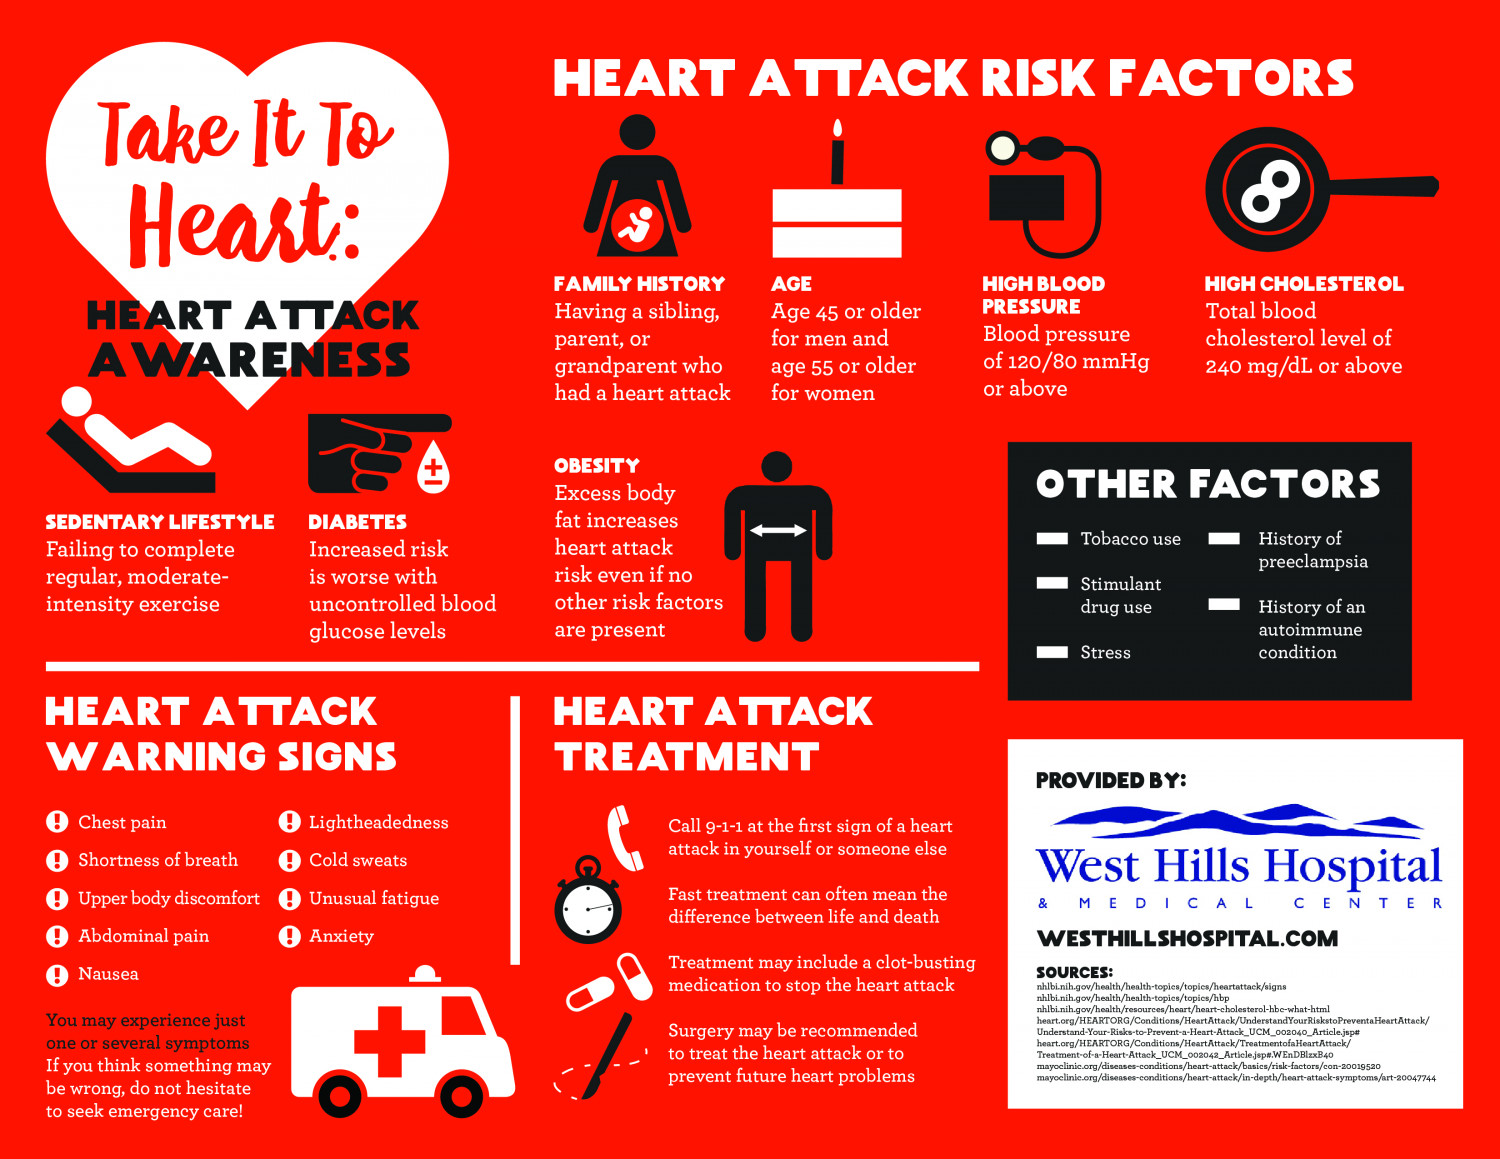 Take it to heart heart attack awareness visual take it to heart heart attack awareness infographic solutioingenieria Images